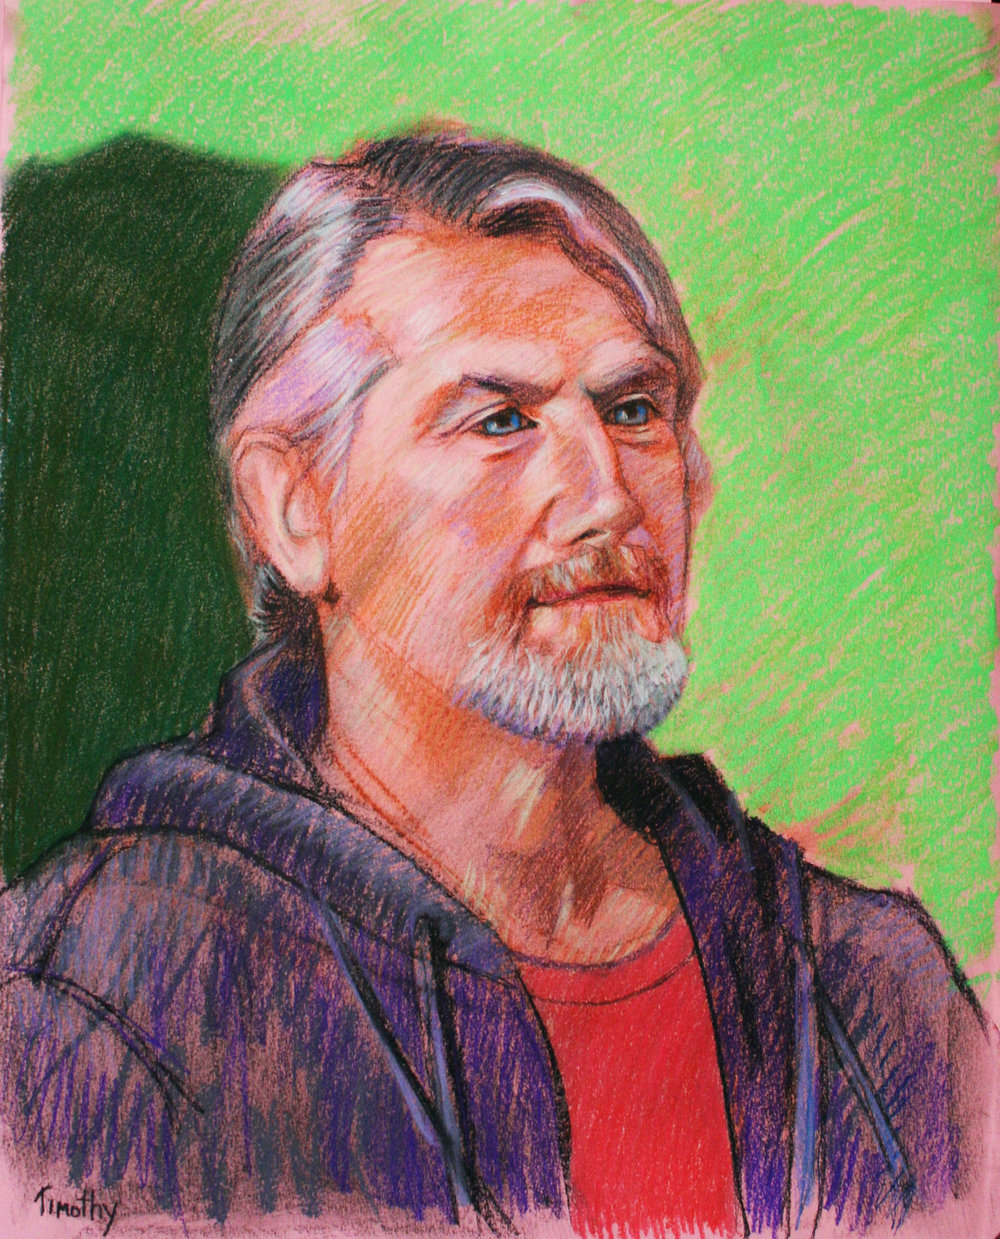 Brian Kilgallon drawn at Forest City Brewery. pastel